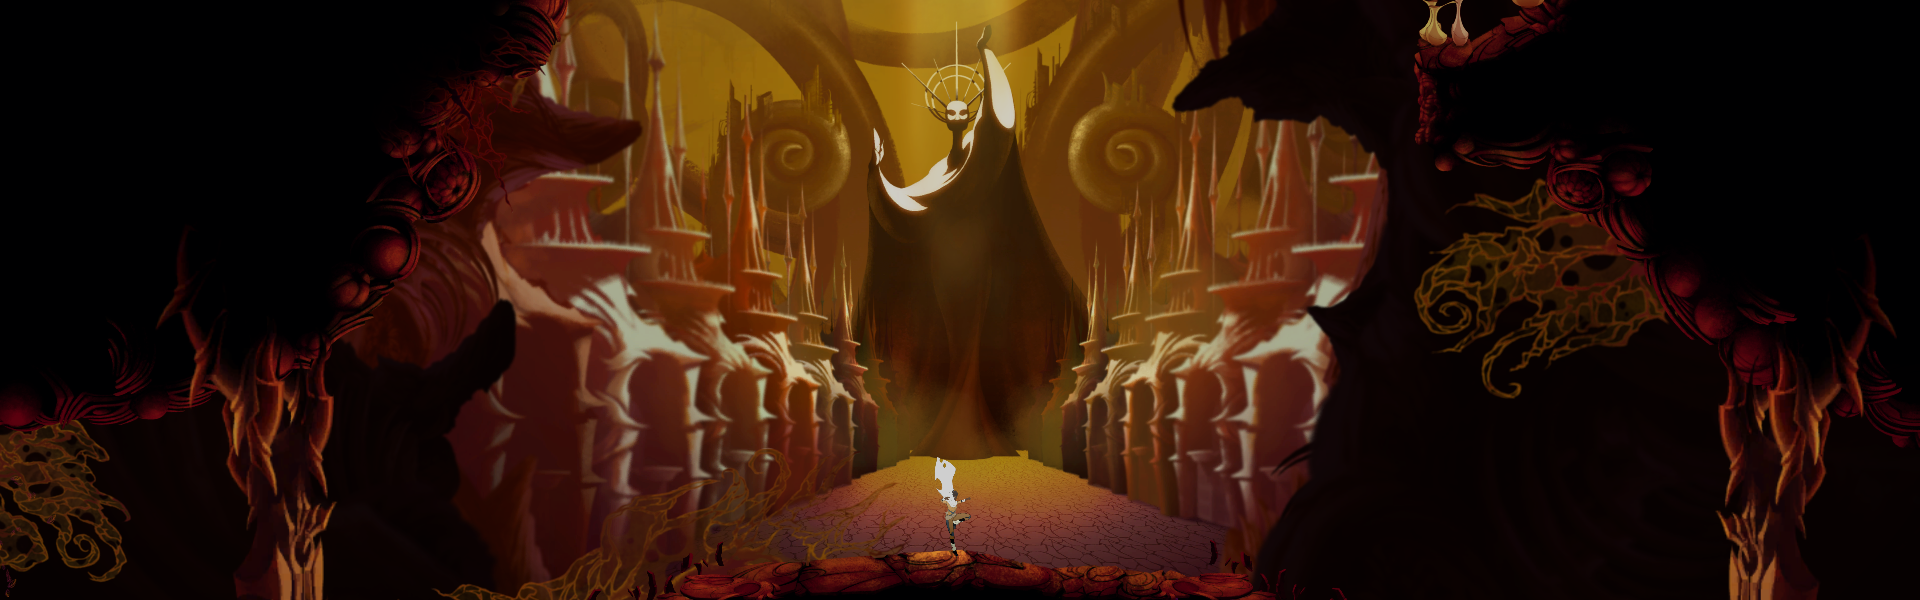 First Look: Sundered